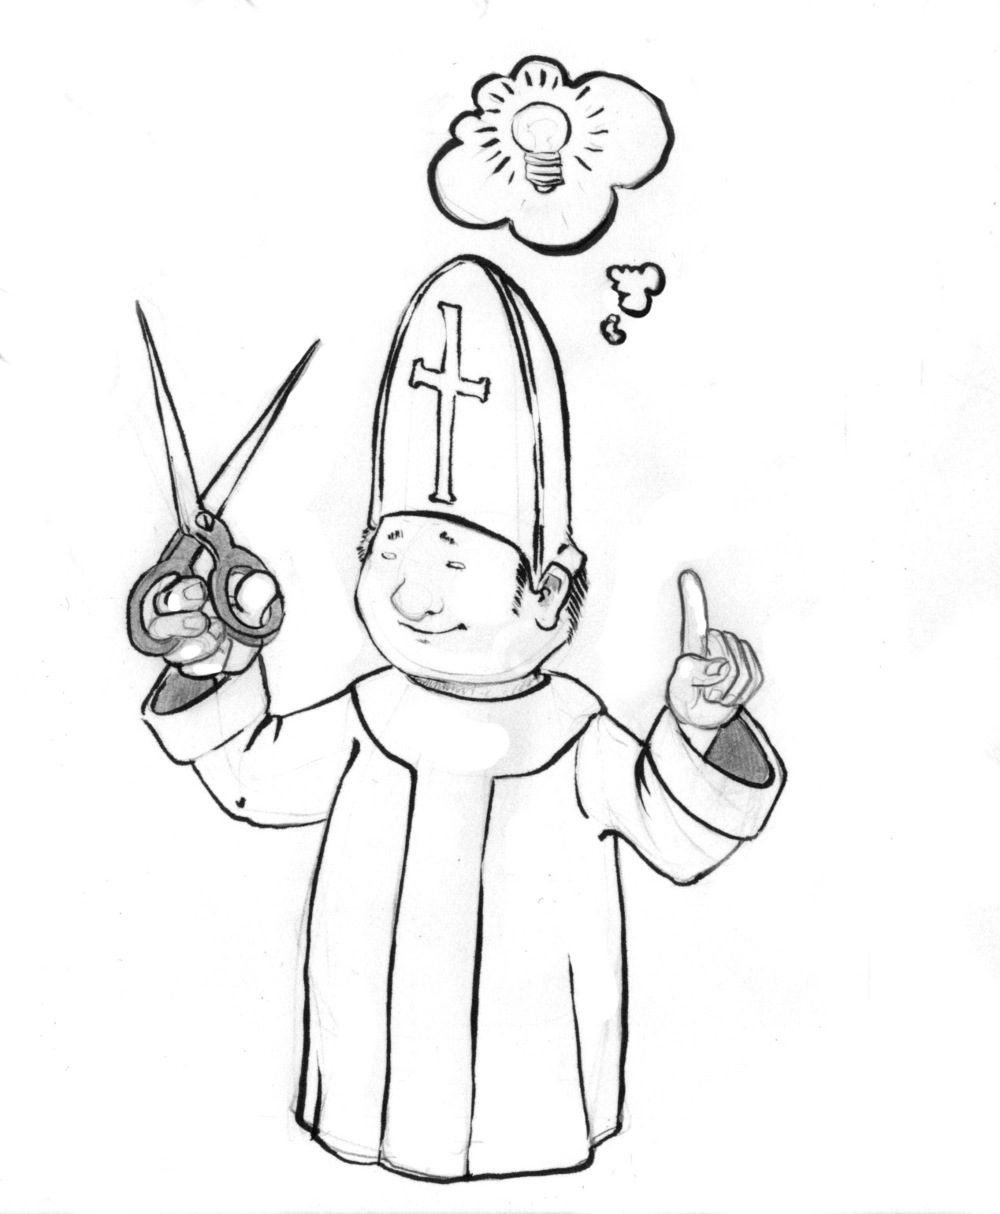 pg 62 Pope's big idea.jpg